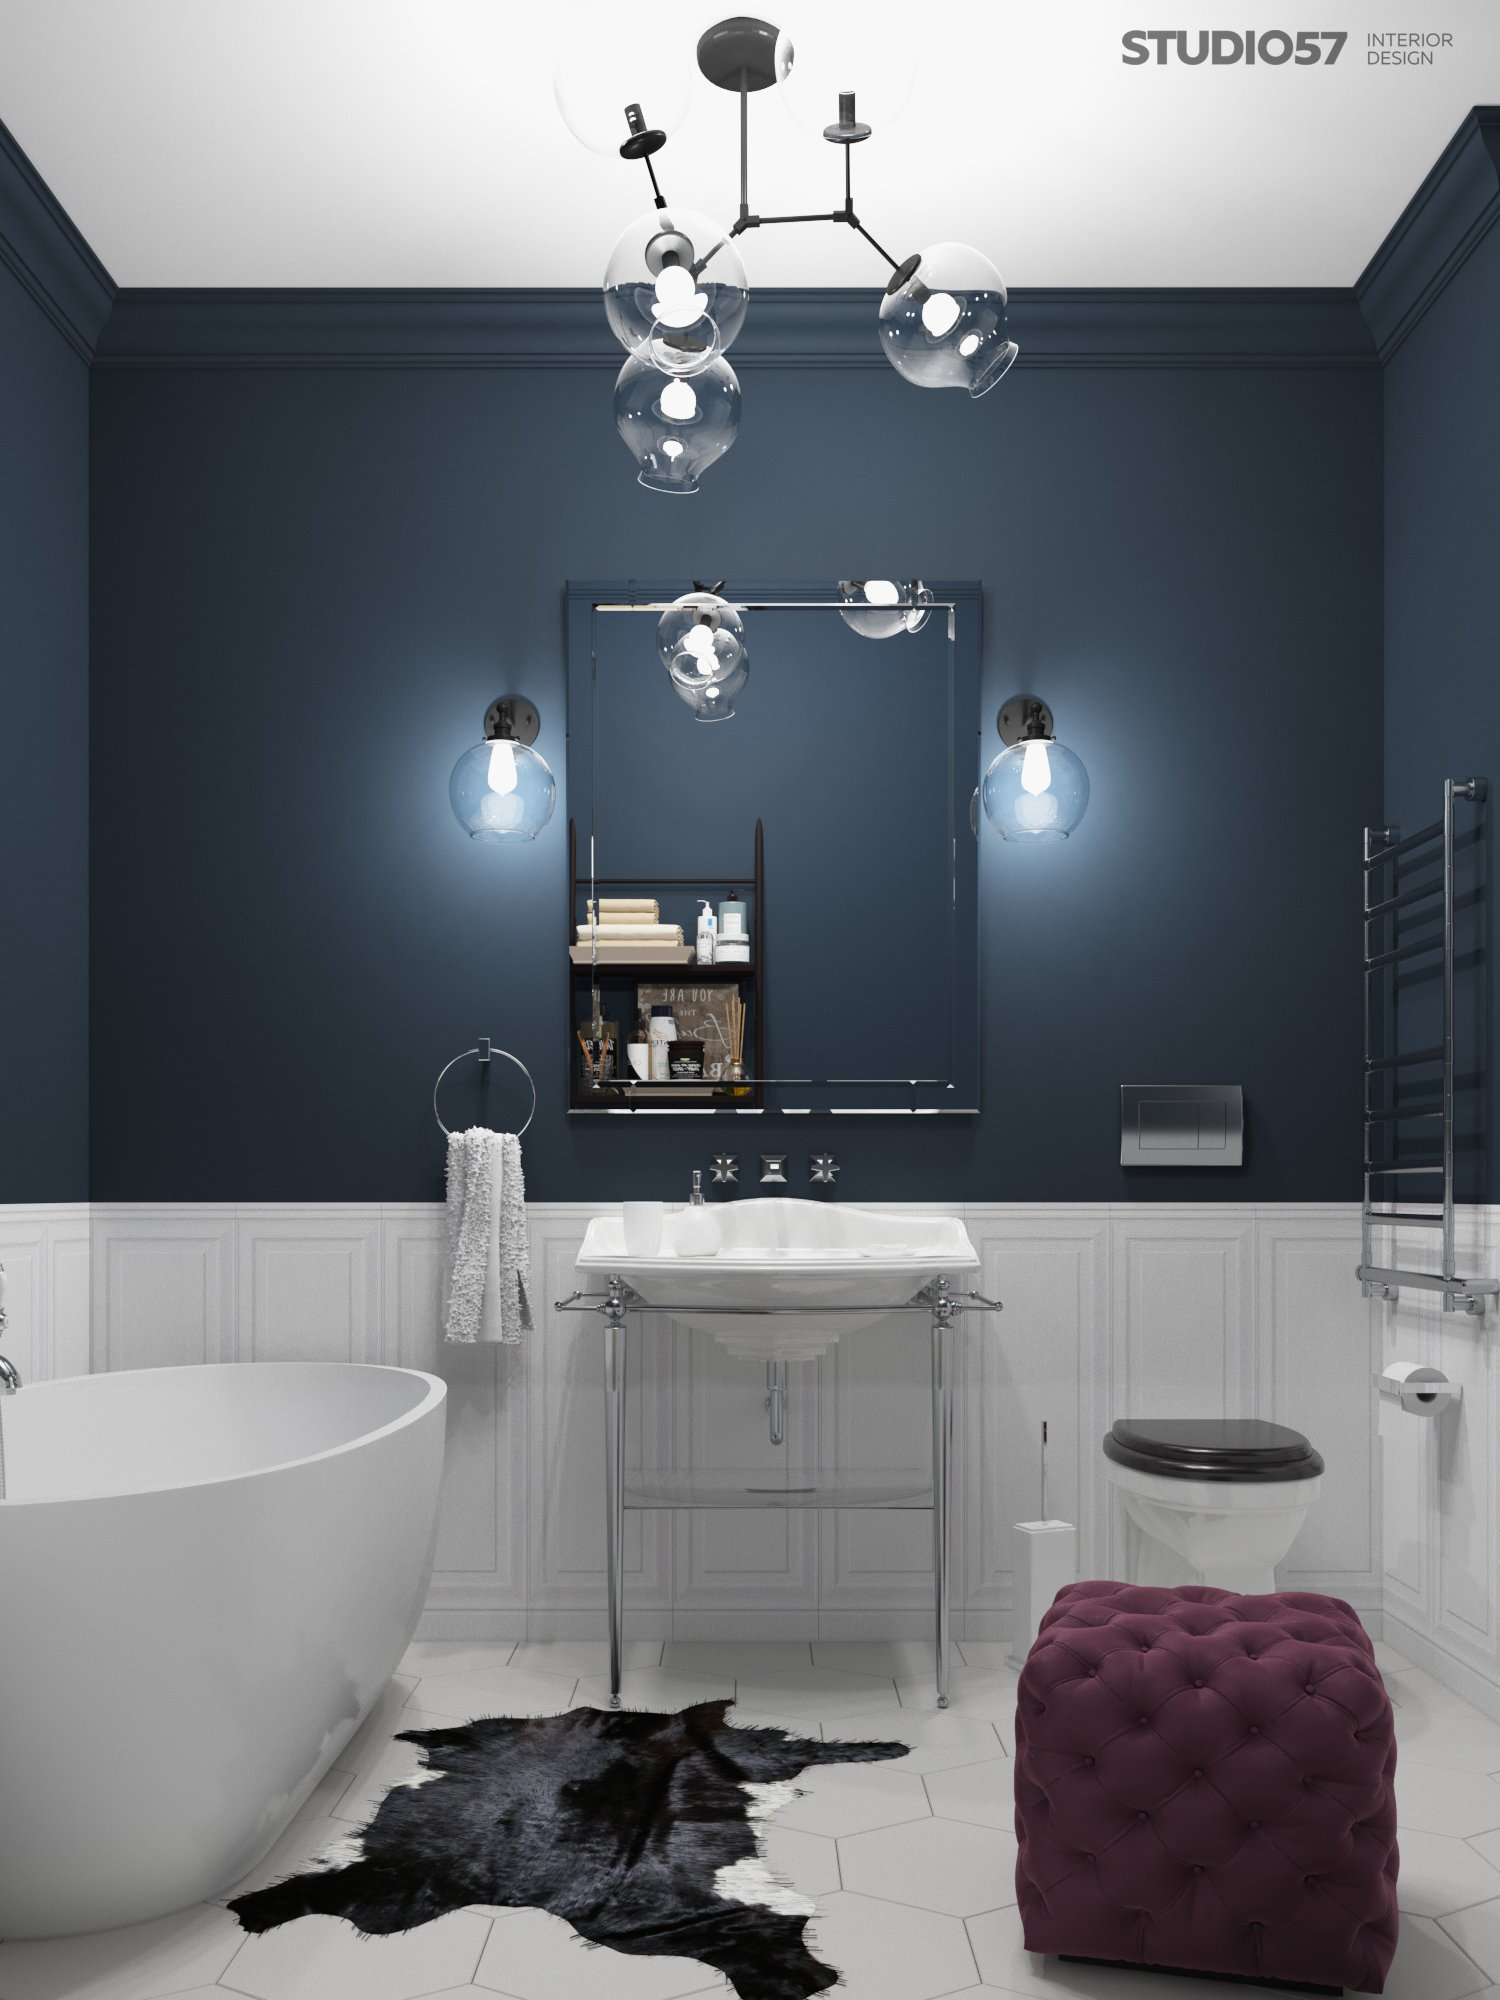 Bathroom design in fusion style